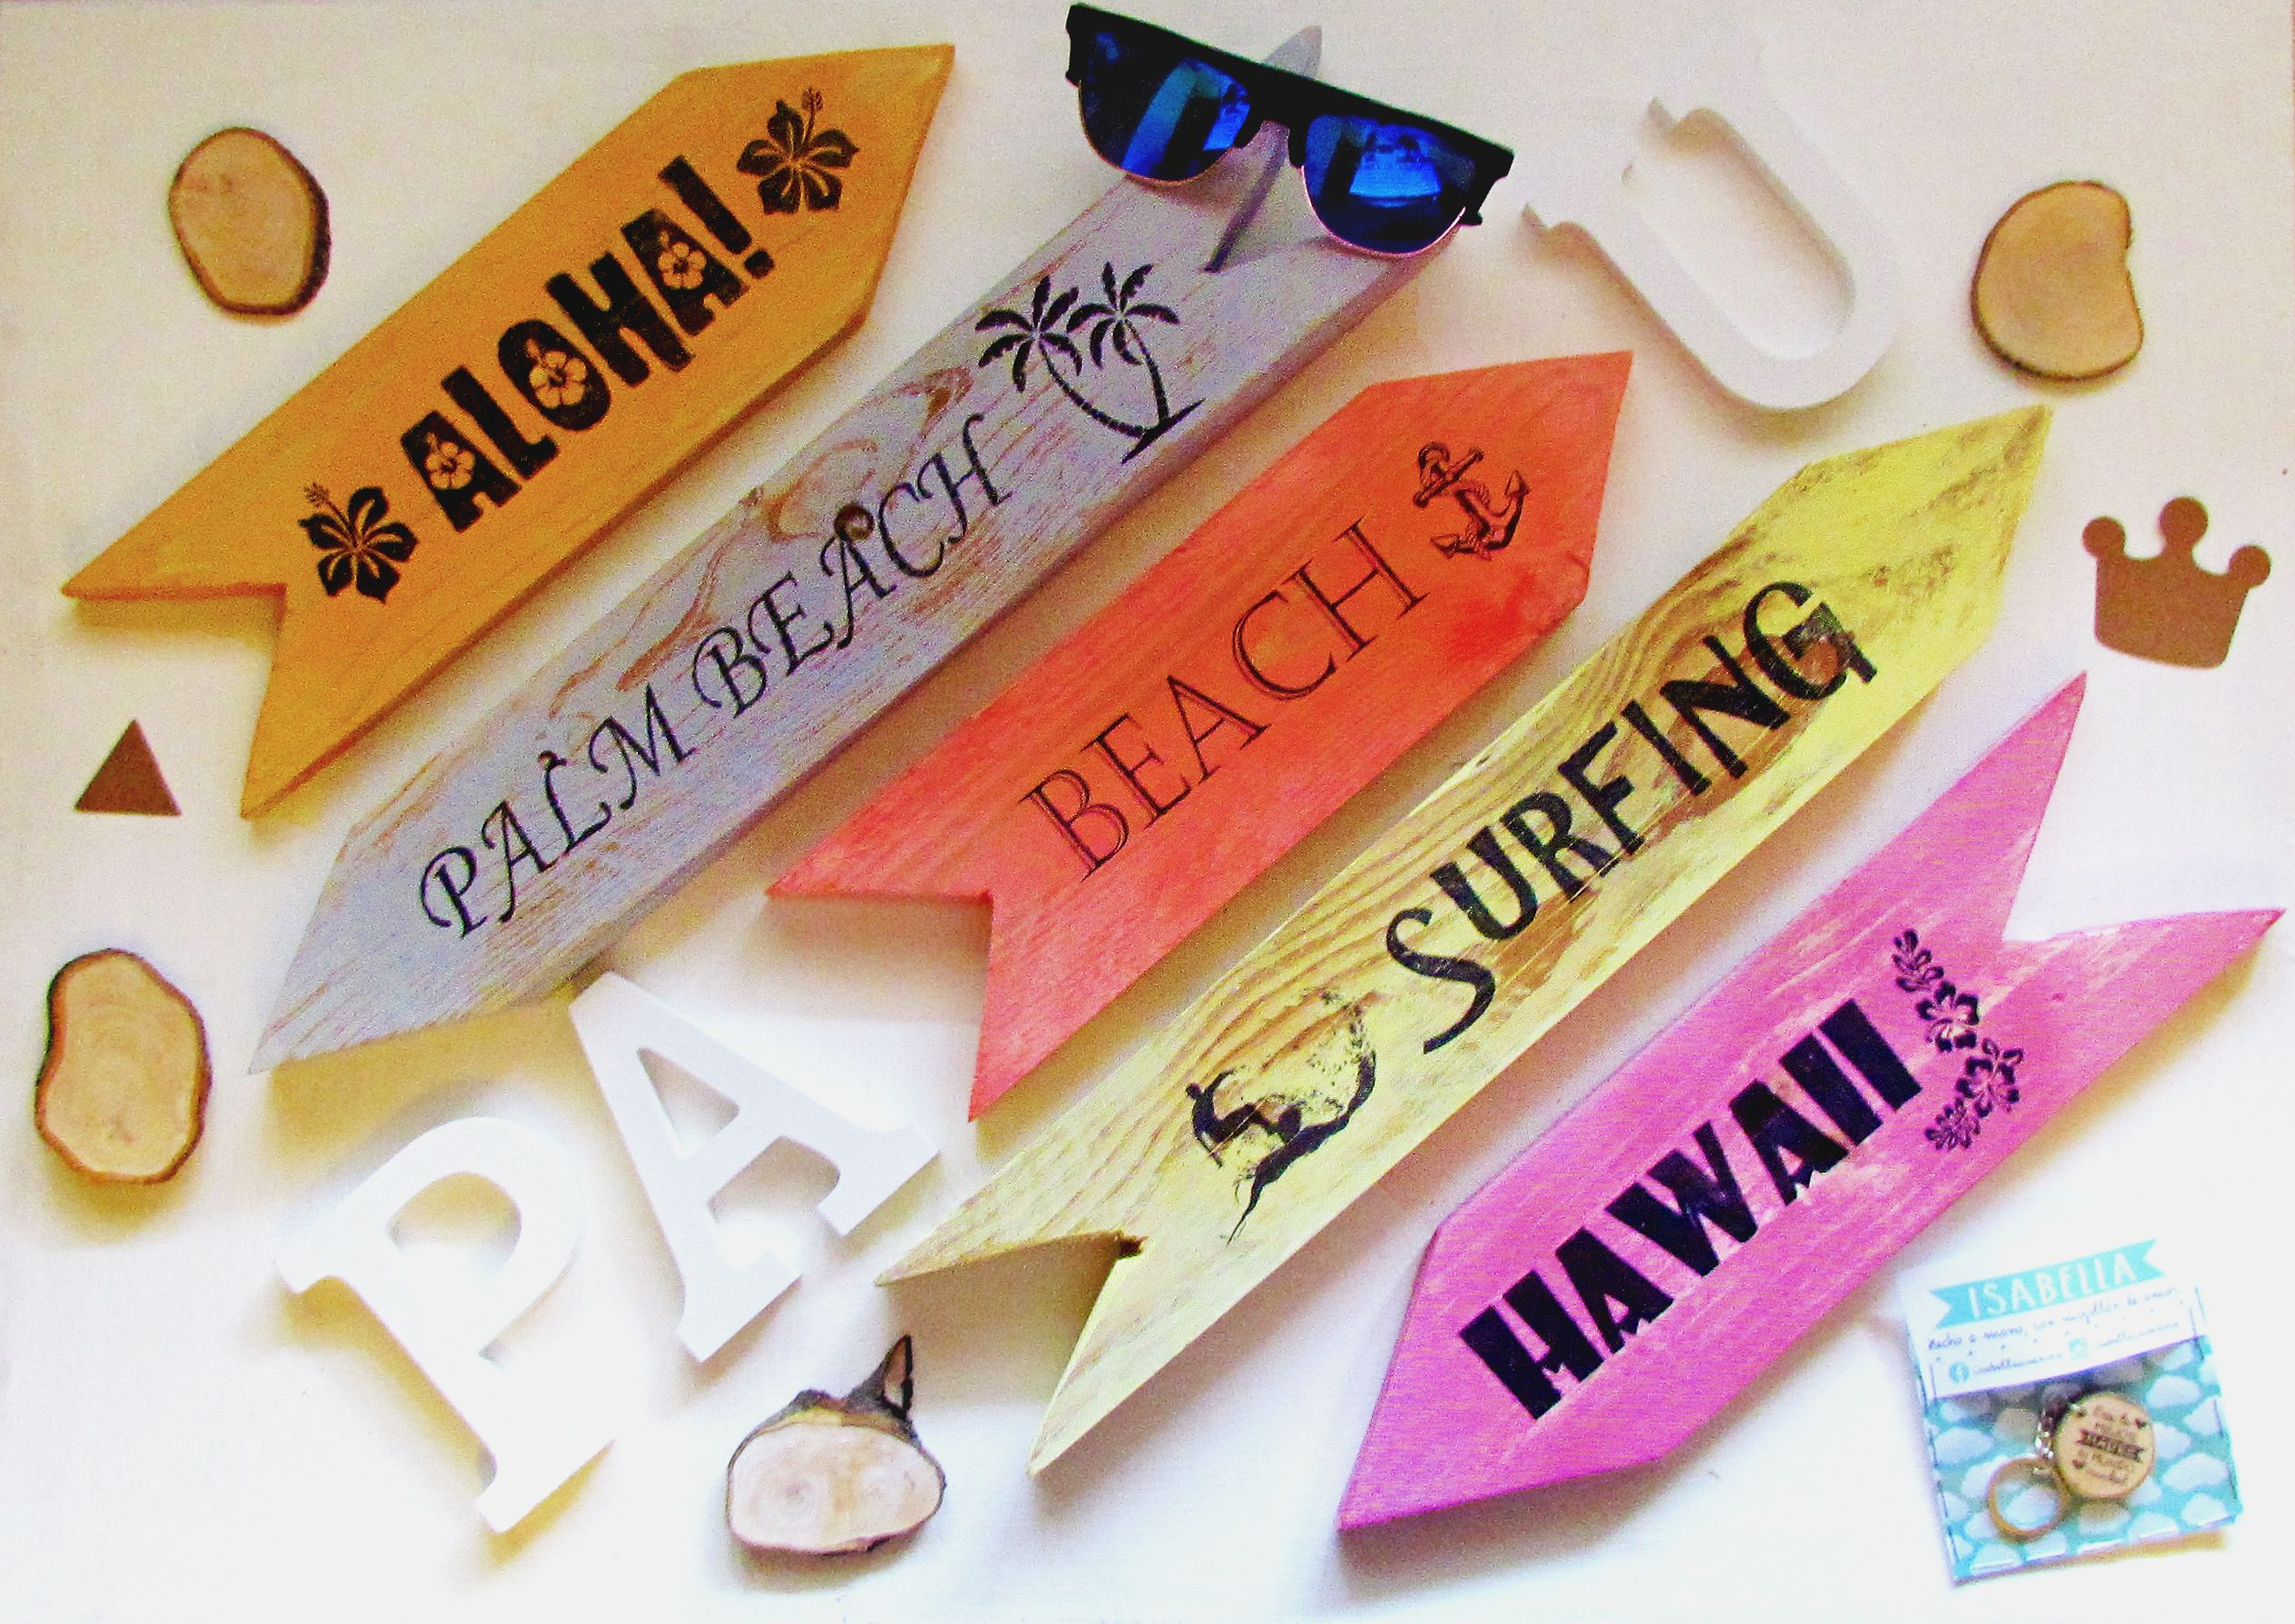 Beach playa flechas hawai surfing aloha - Scrabble decoracion ...